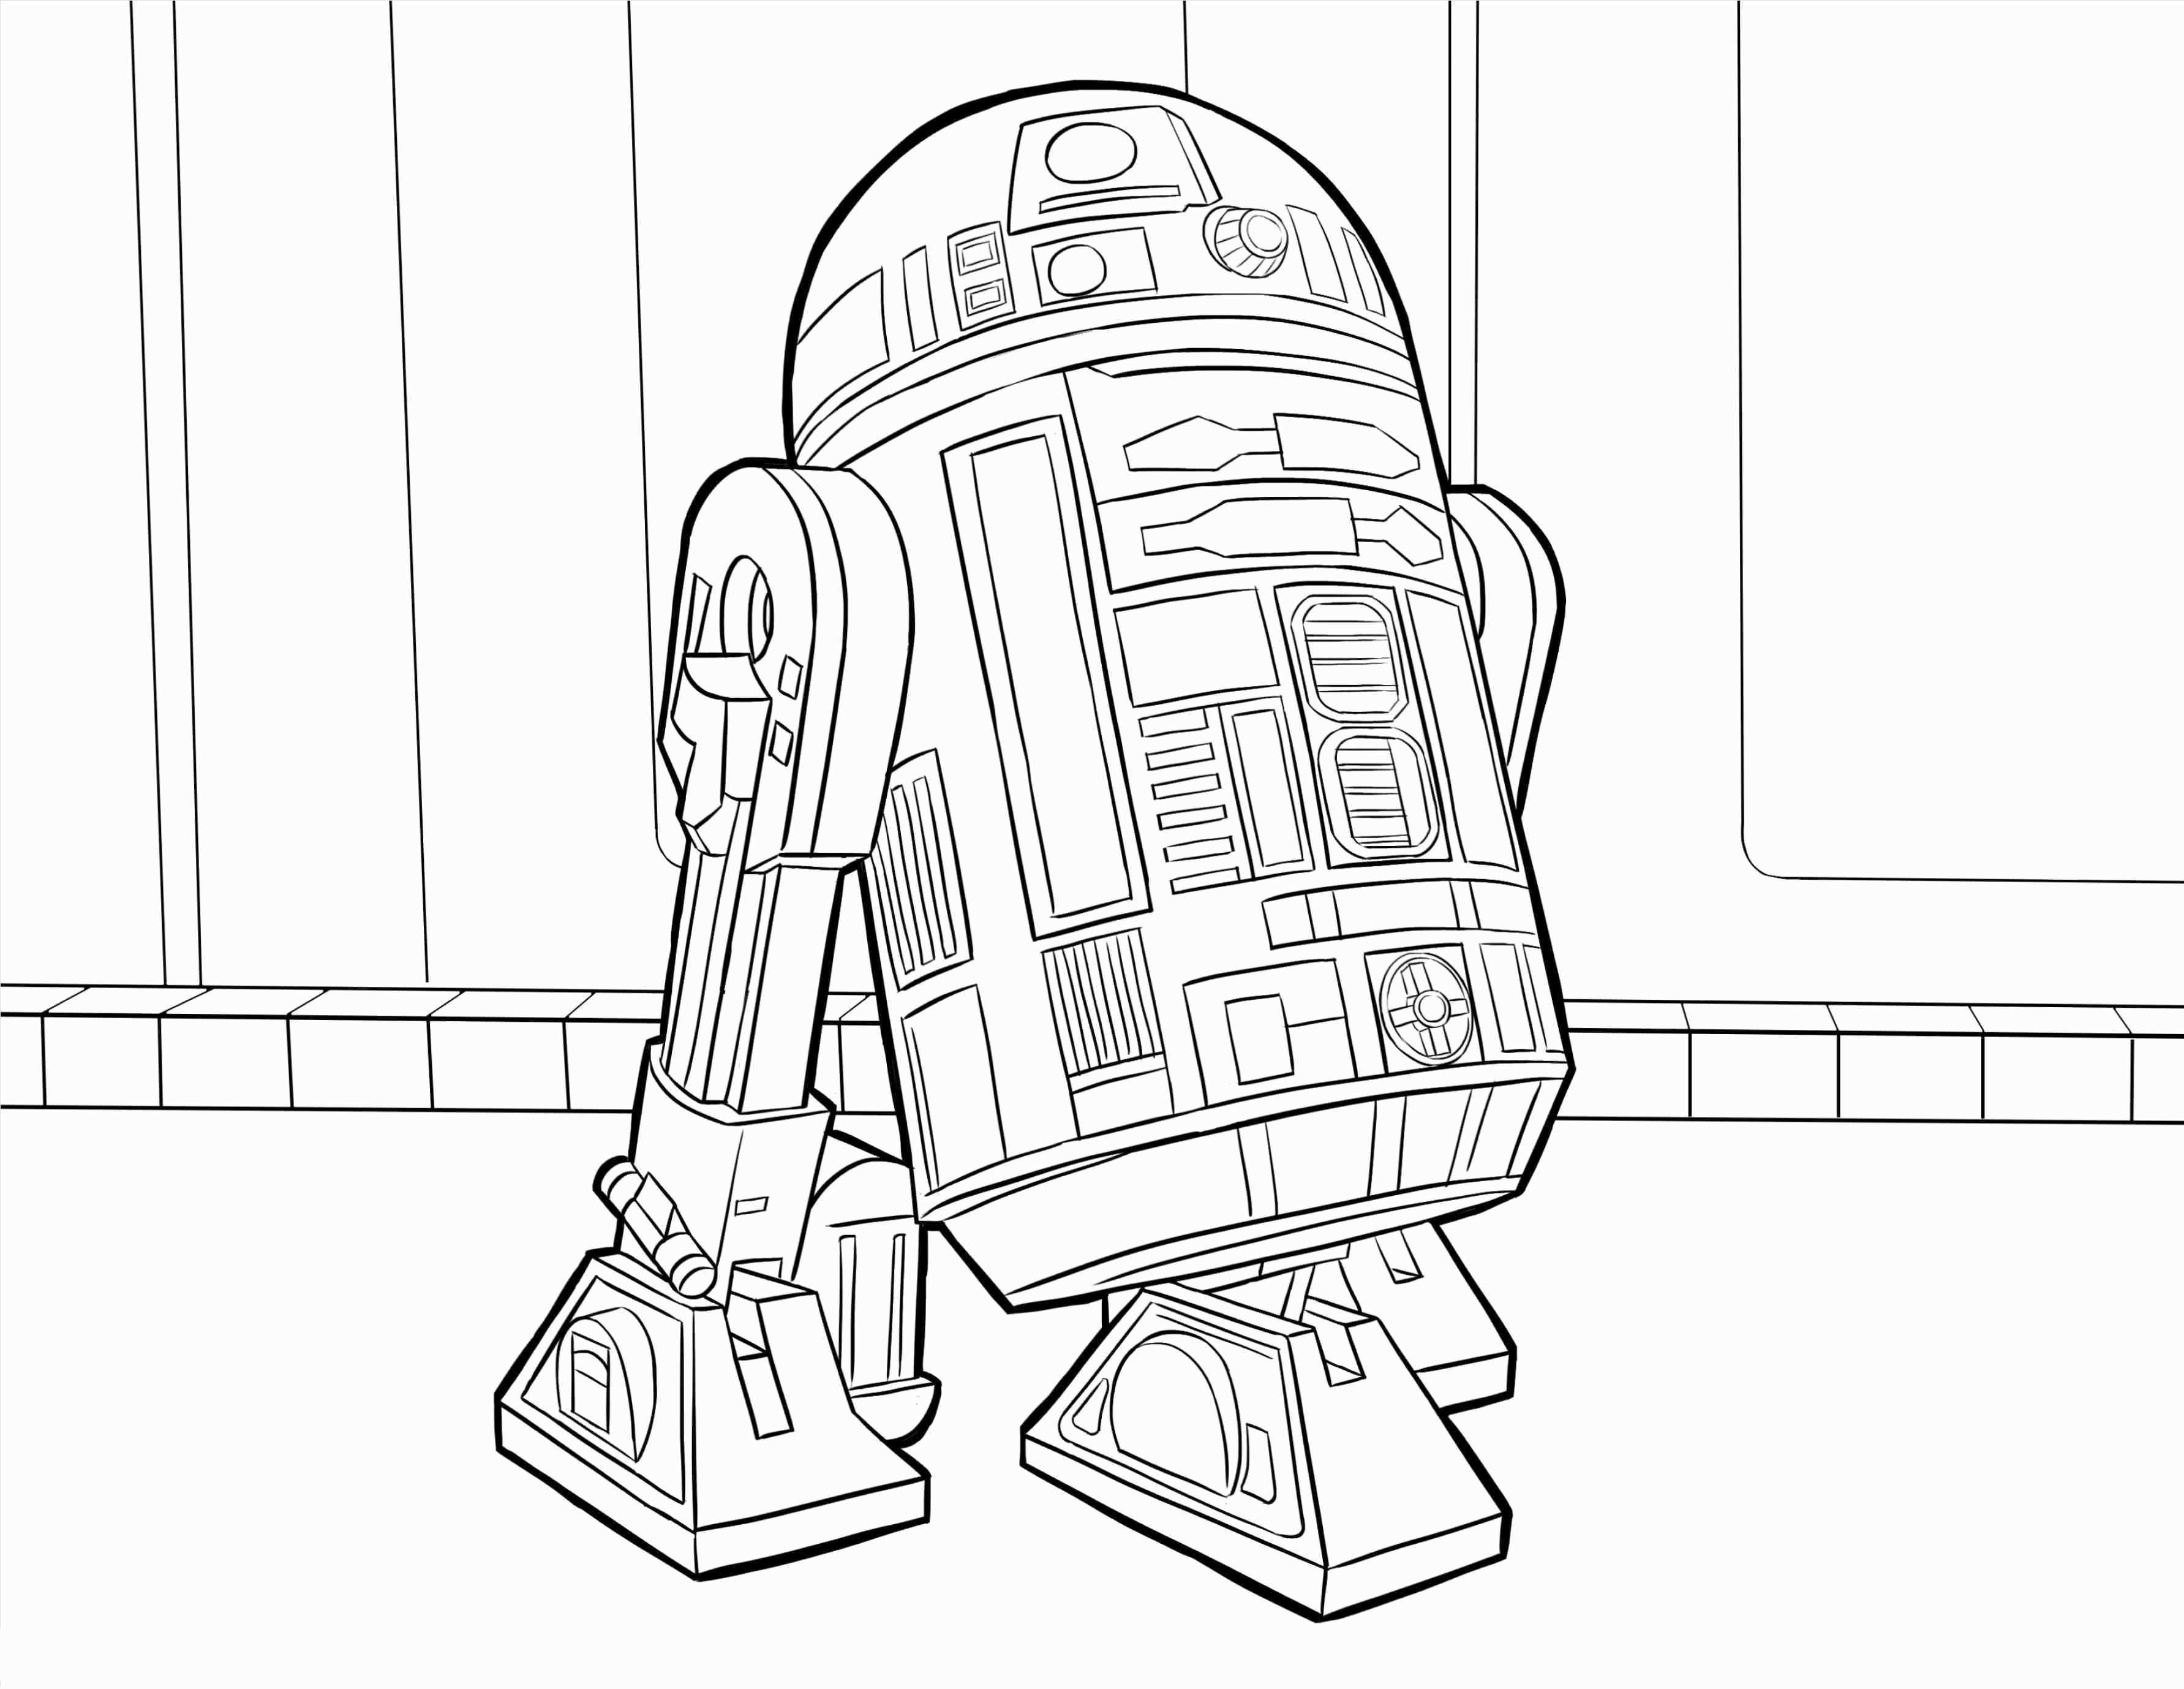 r2d2 coloring page r2d2 coloring pages free printable coloring pages coloring page r2d2